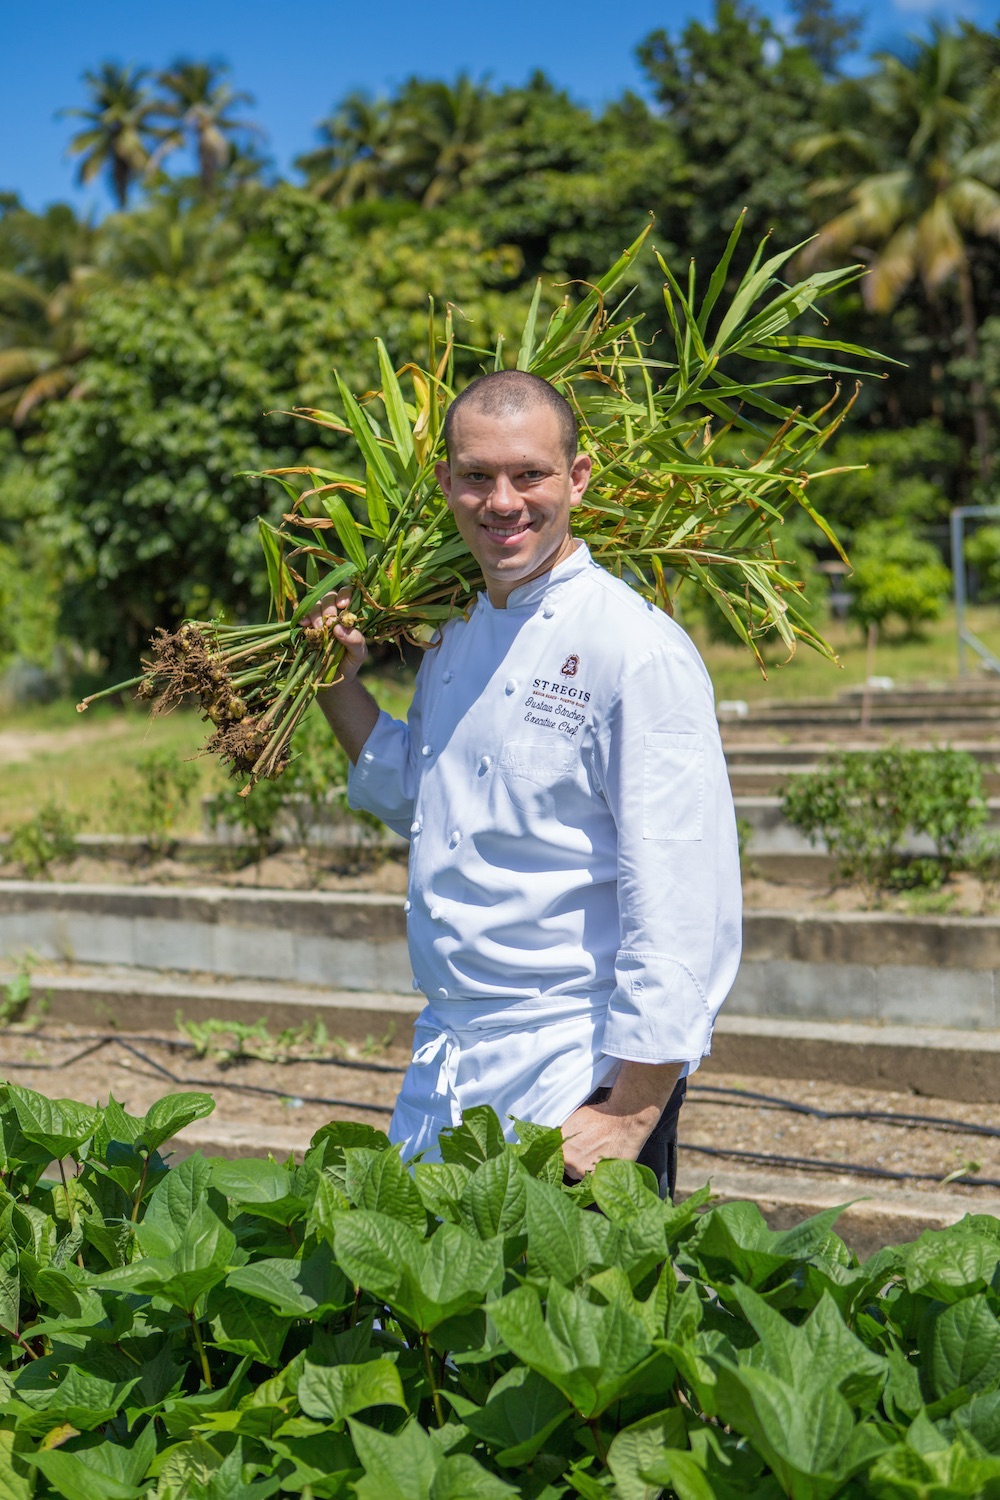 Executive Chef Gustavo Sanchez of Fern at the St. Regis Bahia Beach Resort in Rio Grande says he selects dishes that appeal to diners and tweaks the recipe to give it a local twist.